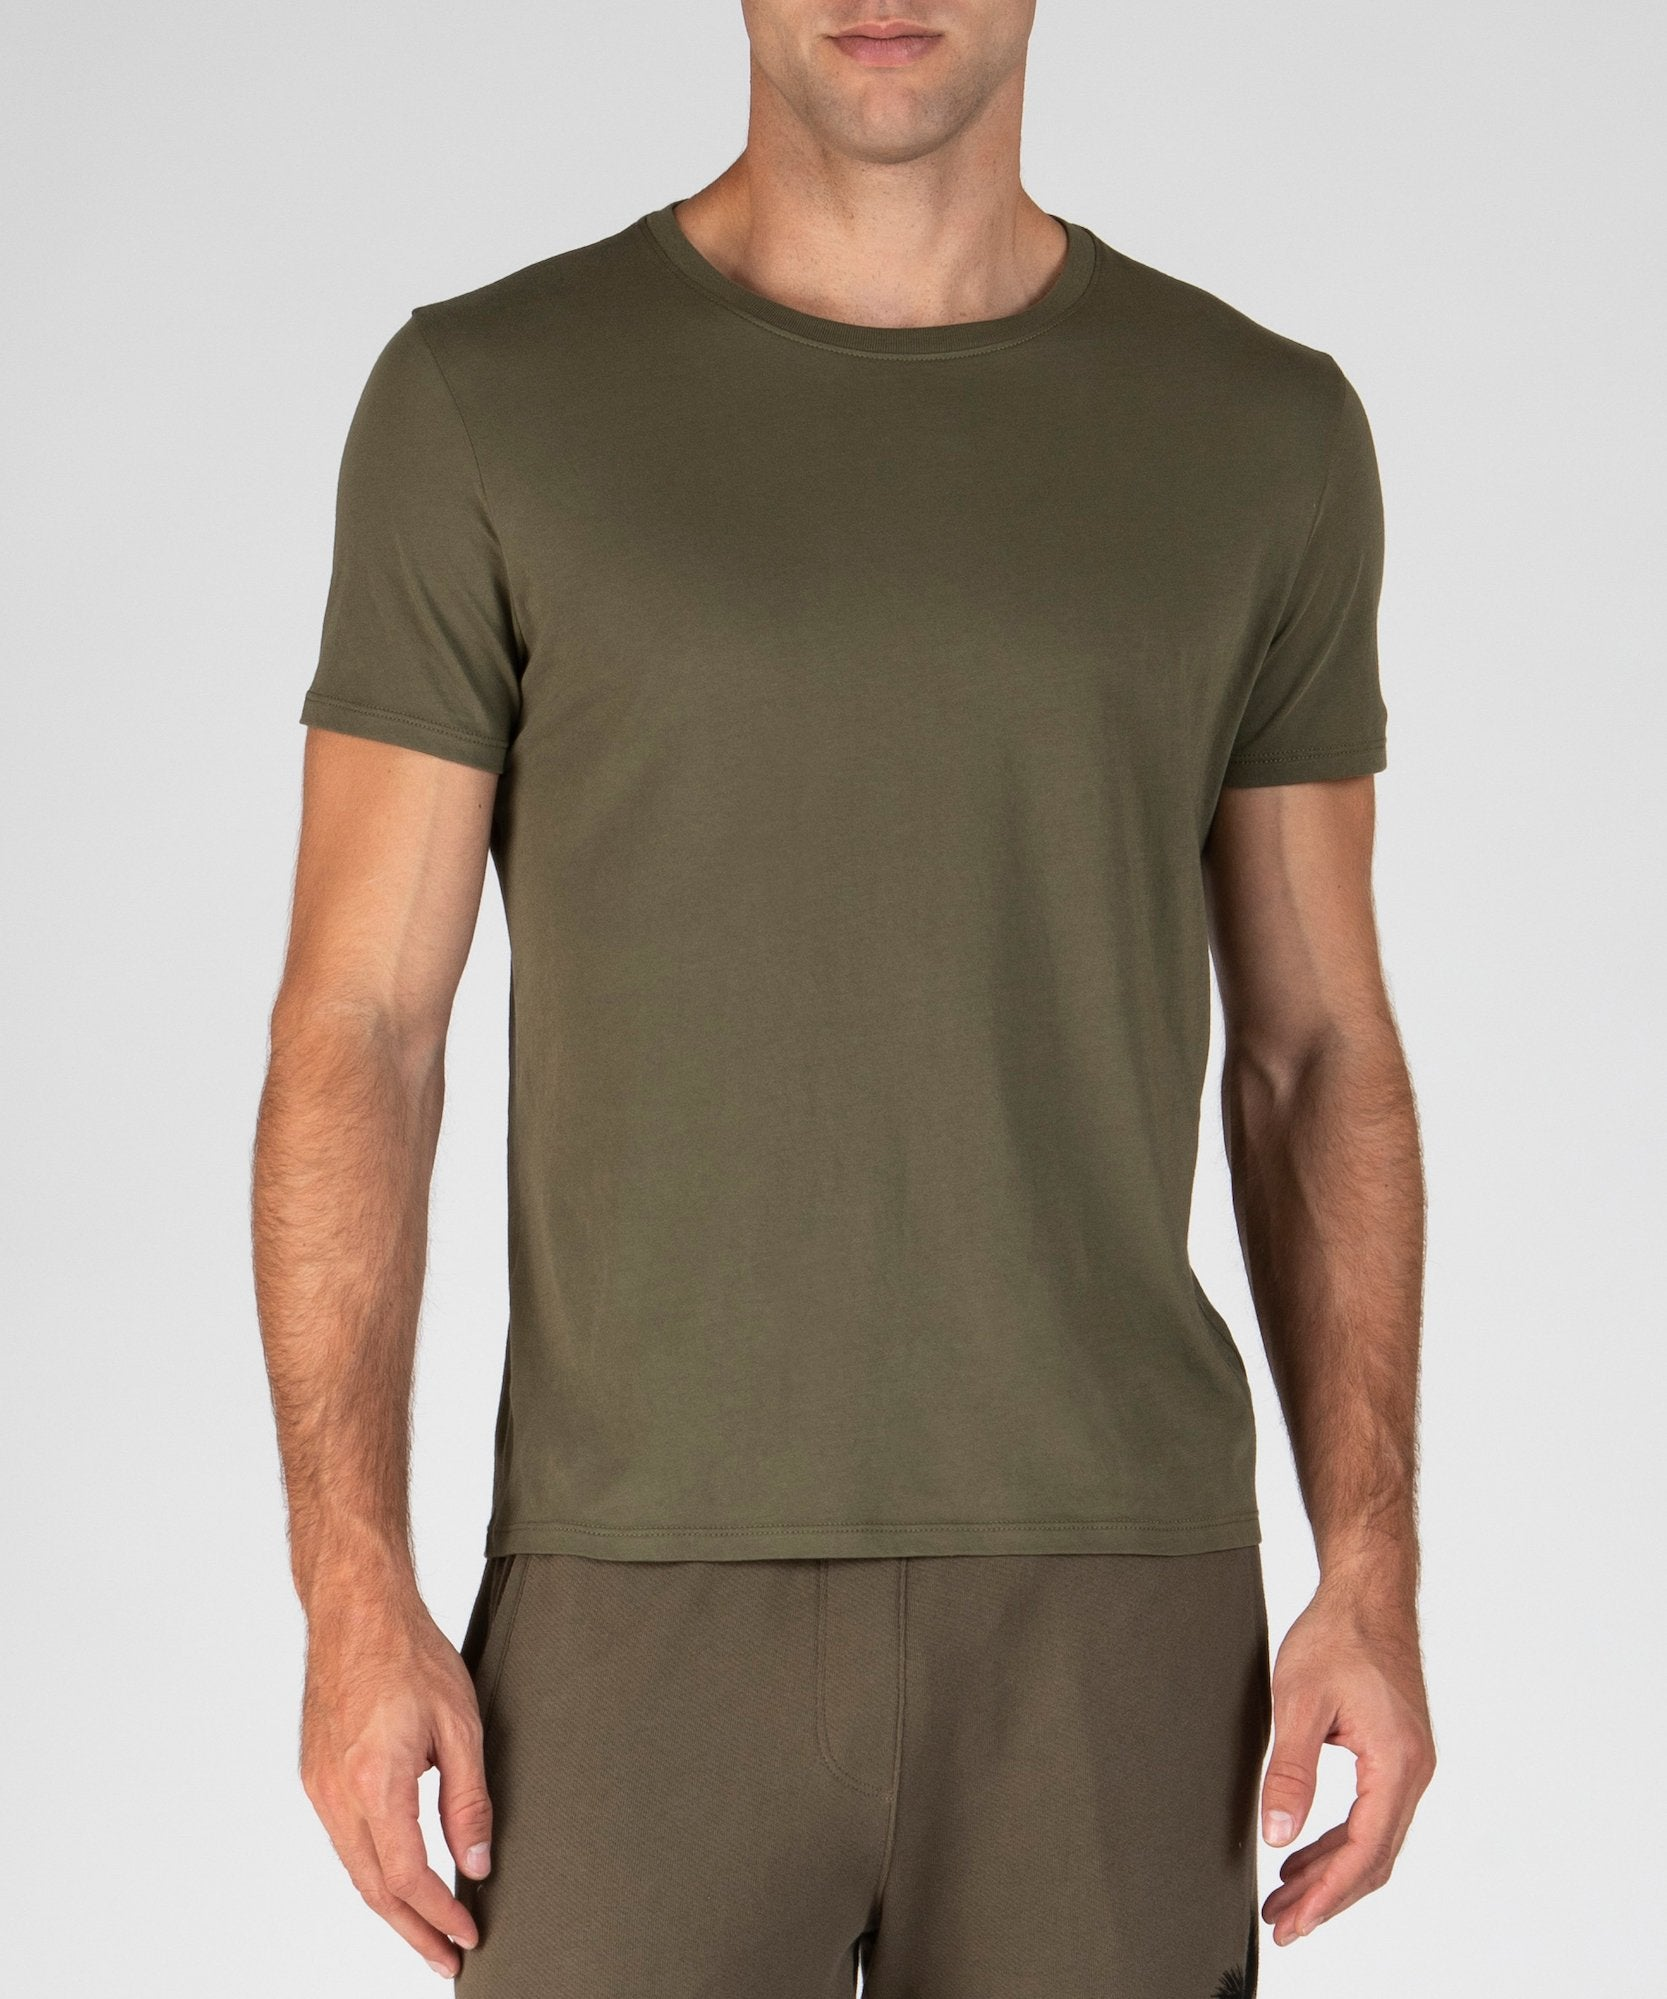 Army Classic Jersey Crew Neck Tee - Men's Cotton Short Sleeve Tee by ATM Anthony Thomas Melillo